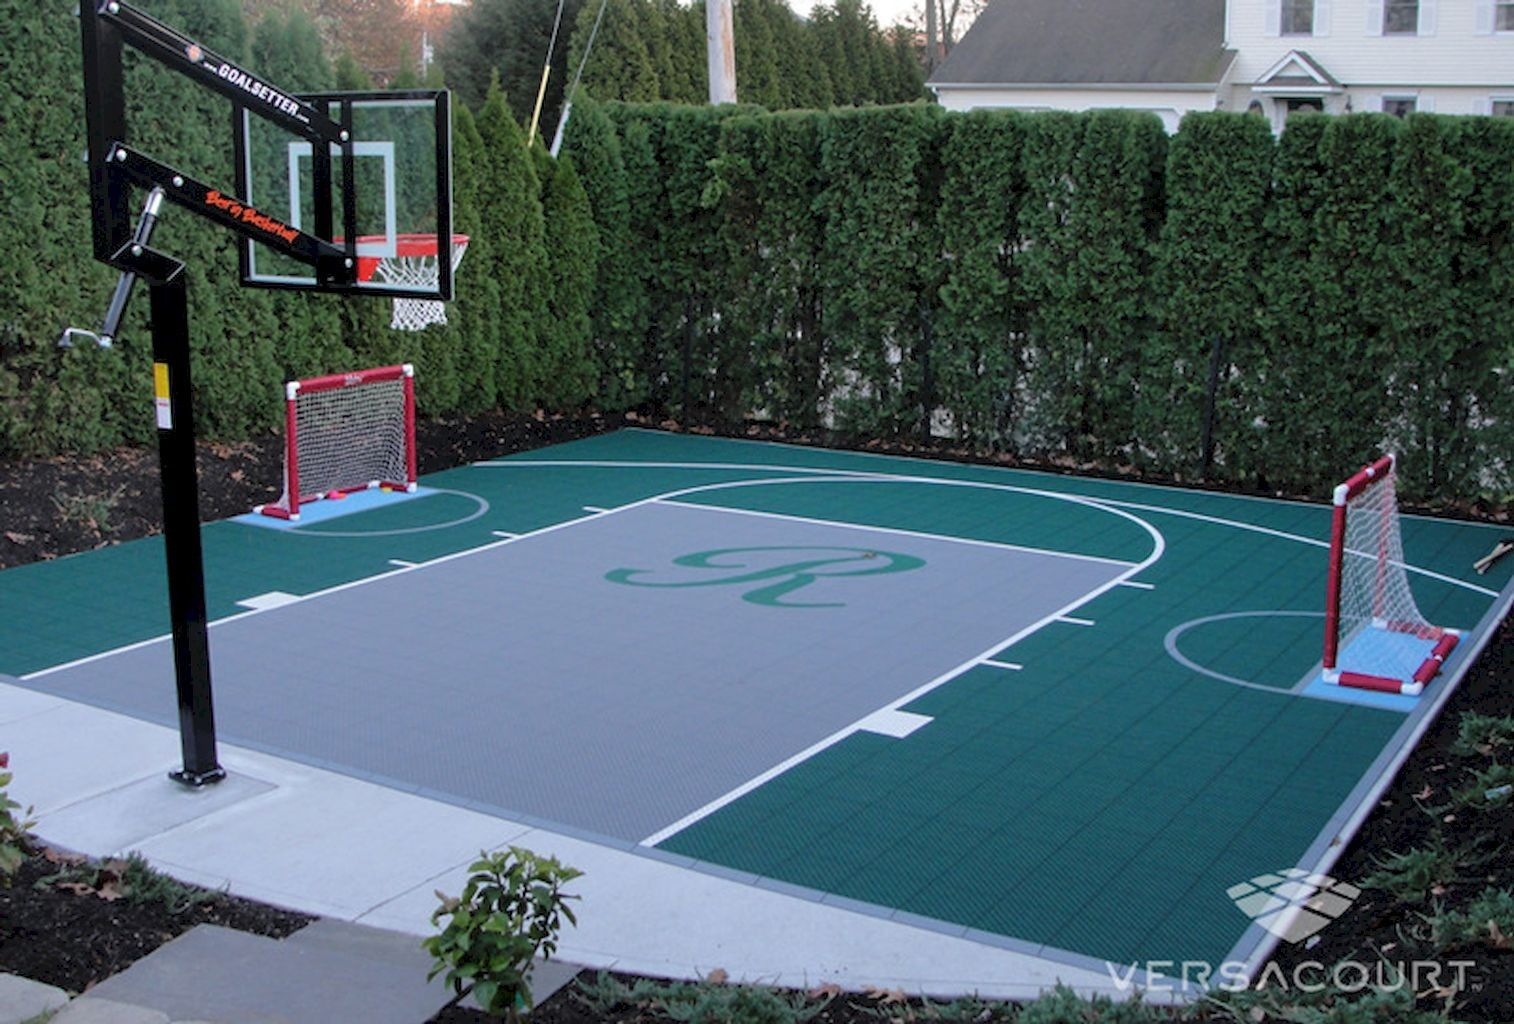 20 Nice Sport Court Backyard Design Ideas Page 12 Of 27